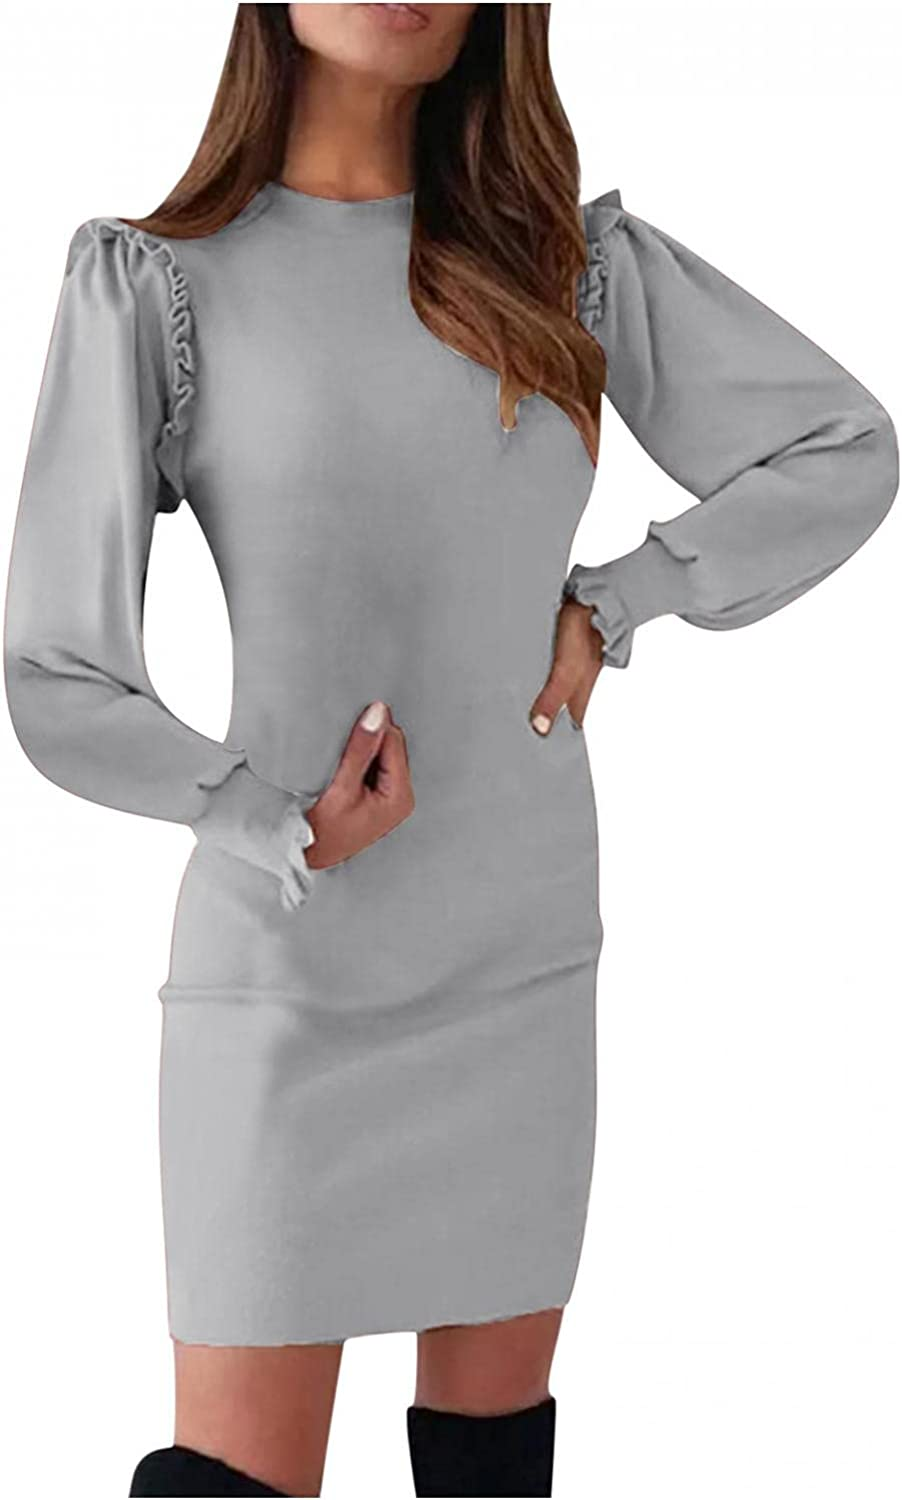 Fourtunes Women's Pure Color Long Sleeve Formal Dresses Round Collar Bodycon Slim Work Office Business Pencil Dress